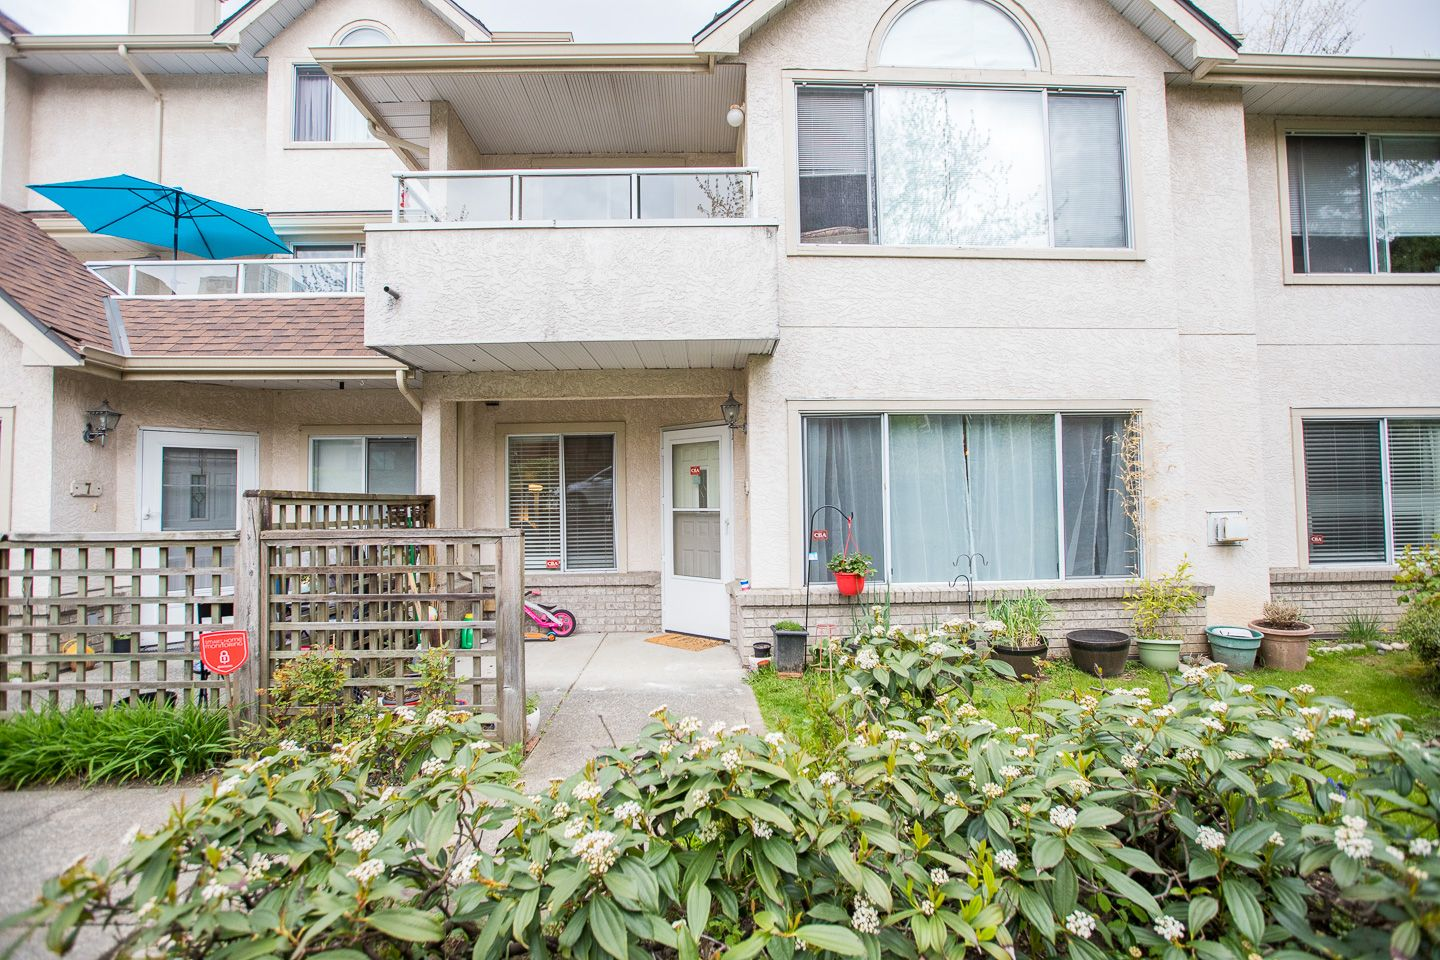 Photo 18: Photos: #8-3701 THURSTON ST in BURNABY: Central Park BS Condo for sale (Burnaby South)  : MLS®# R2572861